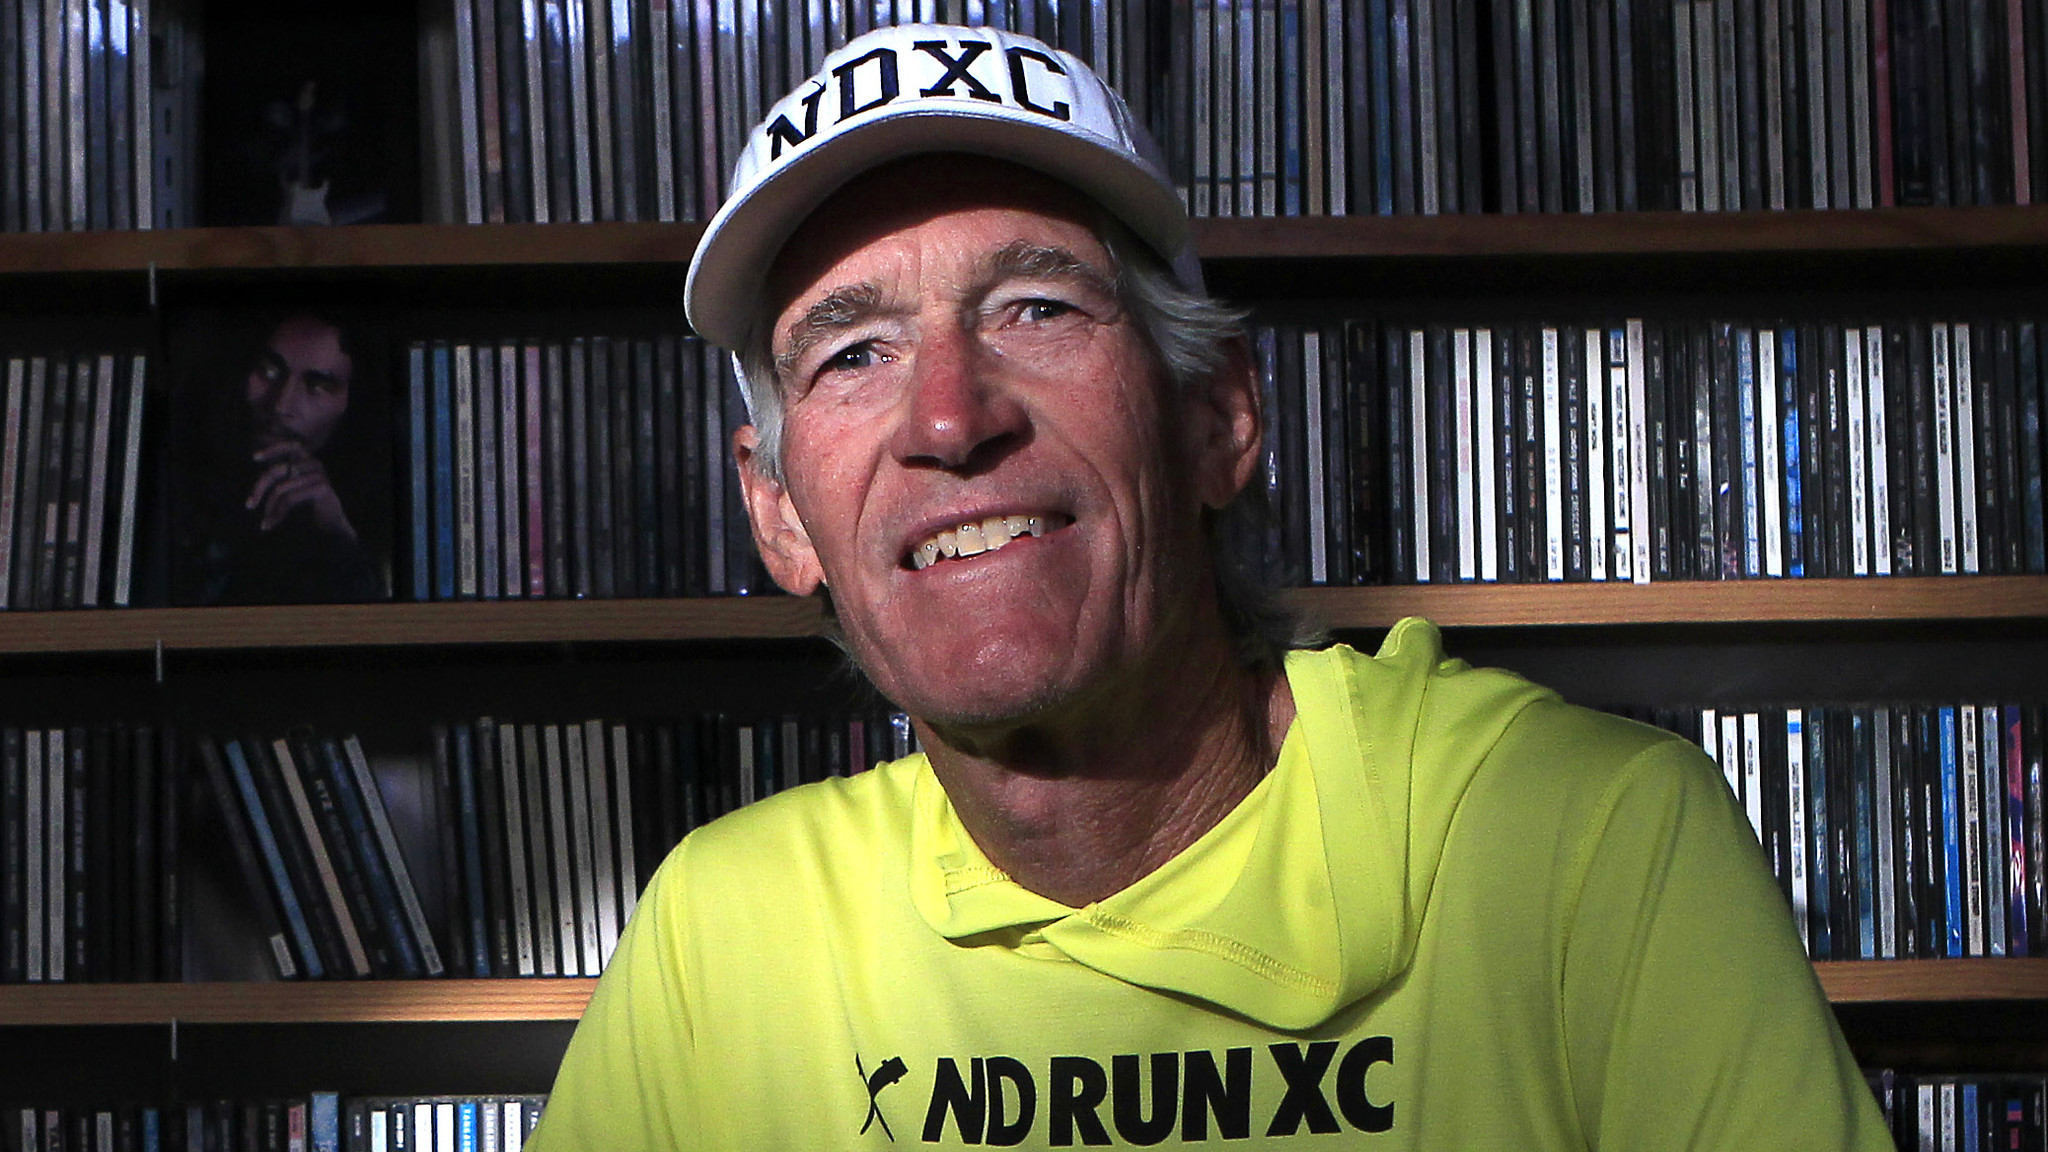 Jon Sutherland Started His Running Streak in 1969